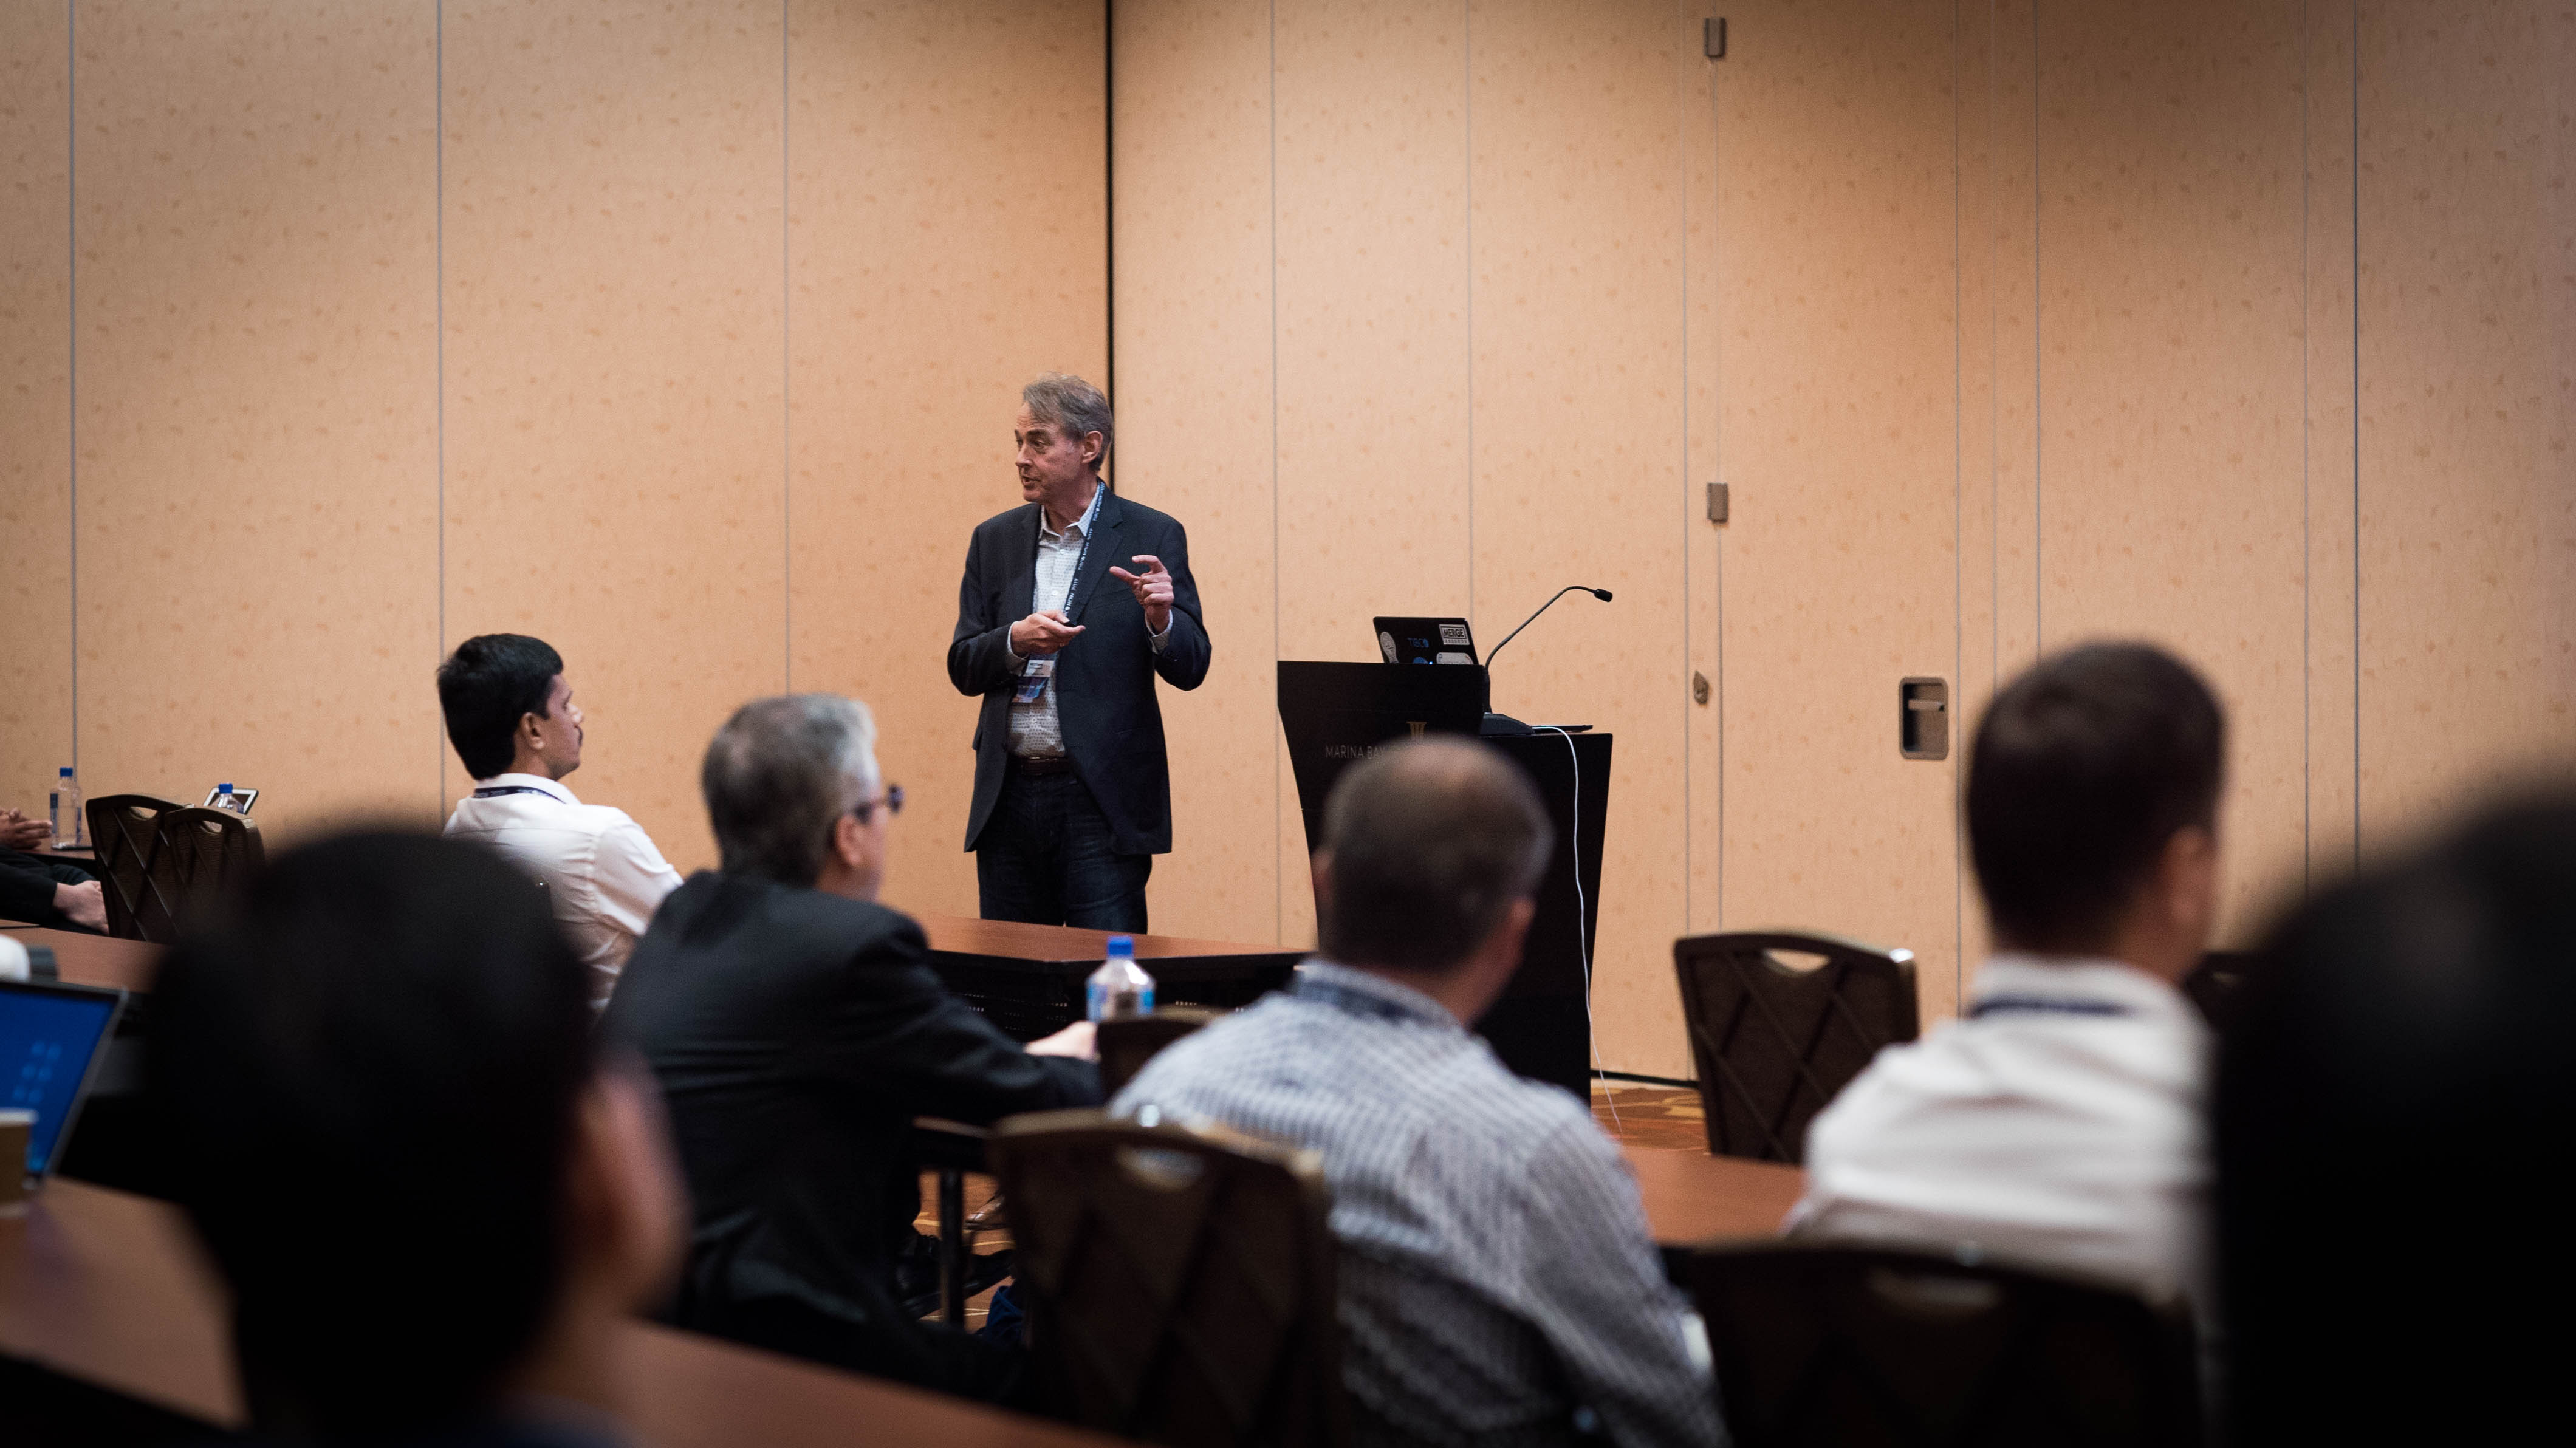 Michael O'Connell explains to a breakout session how to do more with Spotfire and go from a plain sheet to an analytics dashboard—in less than 7 minutes!